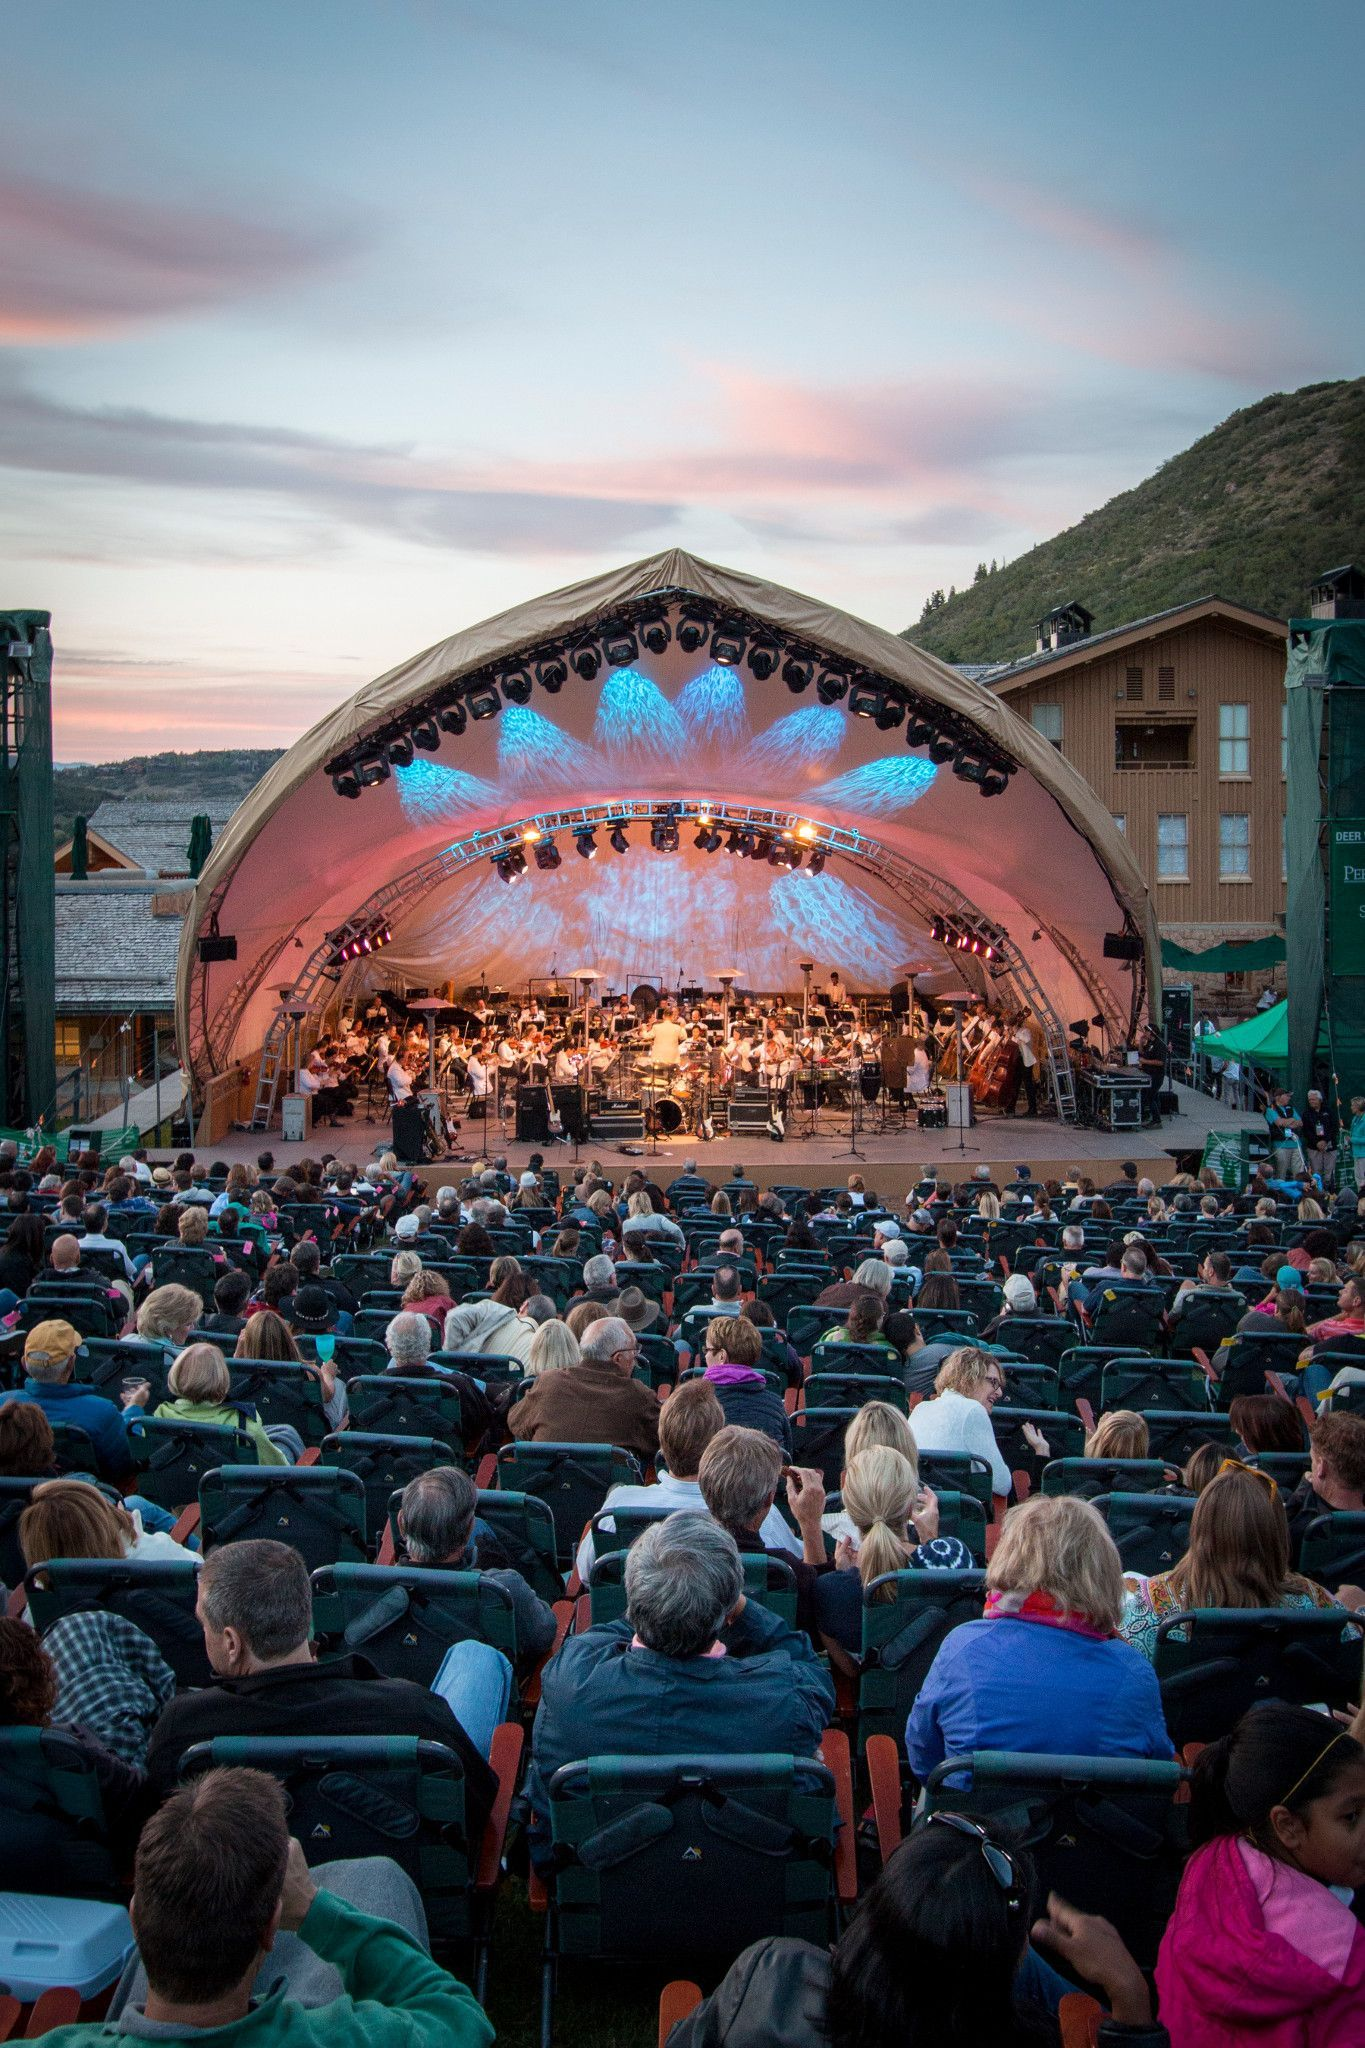 The Lowdown On Summer Concerts At Deer Valley Resort If Live Music And Summer Picnics Sound Like Your Idea Deer Valley Resort Park City Utah Summer Park City